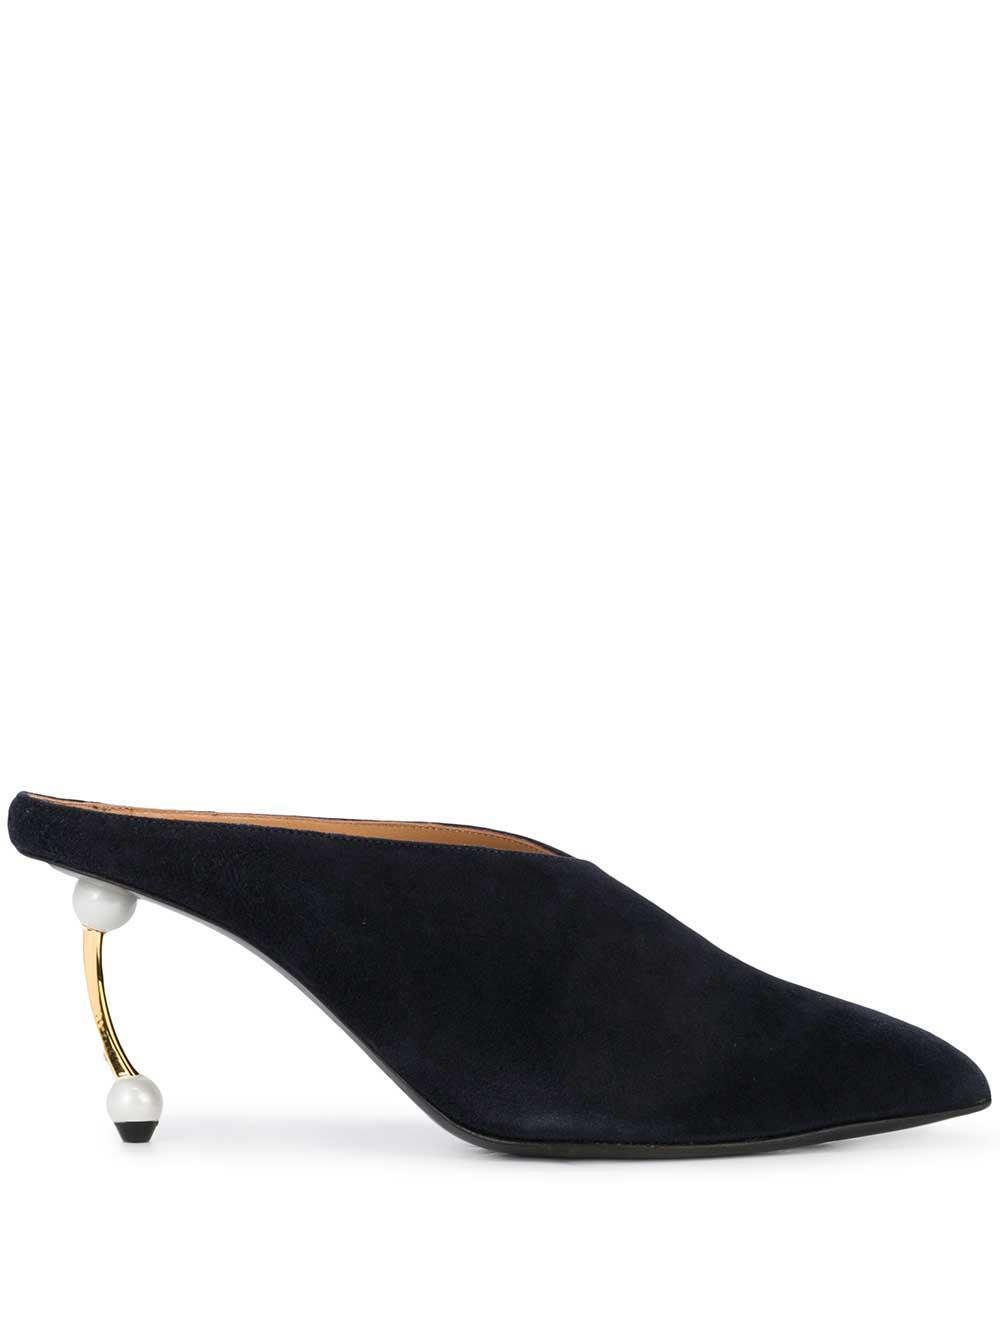 Suede 75mm Mule With Pearl Heel Item # CL19I2056